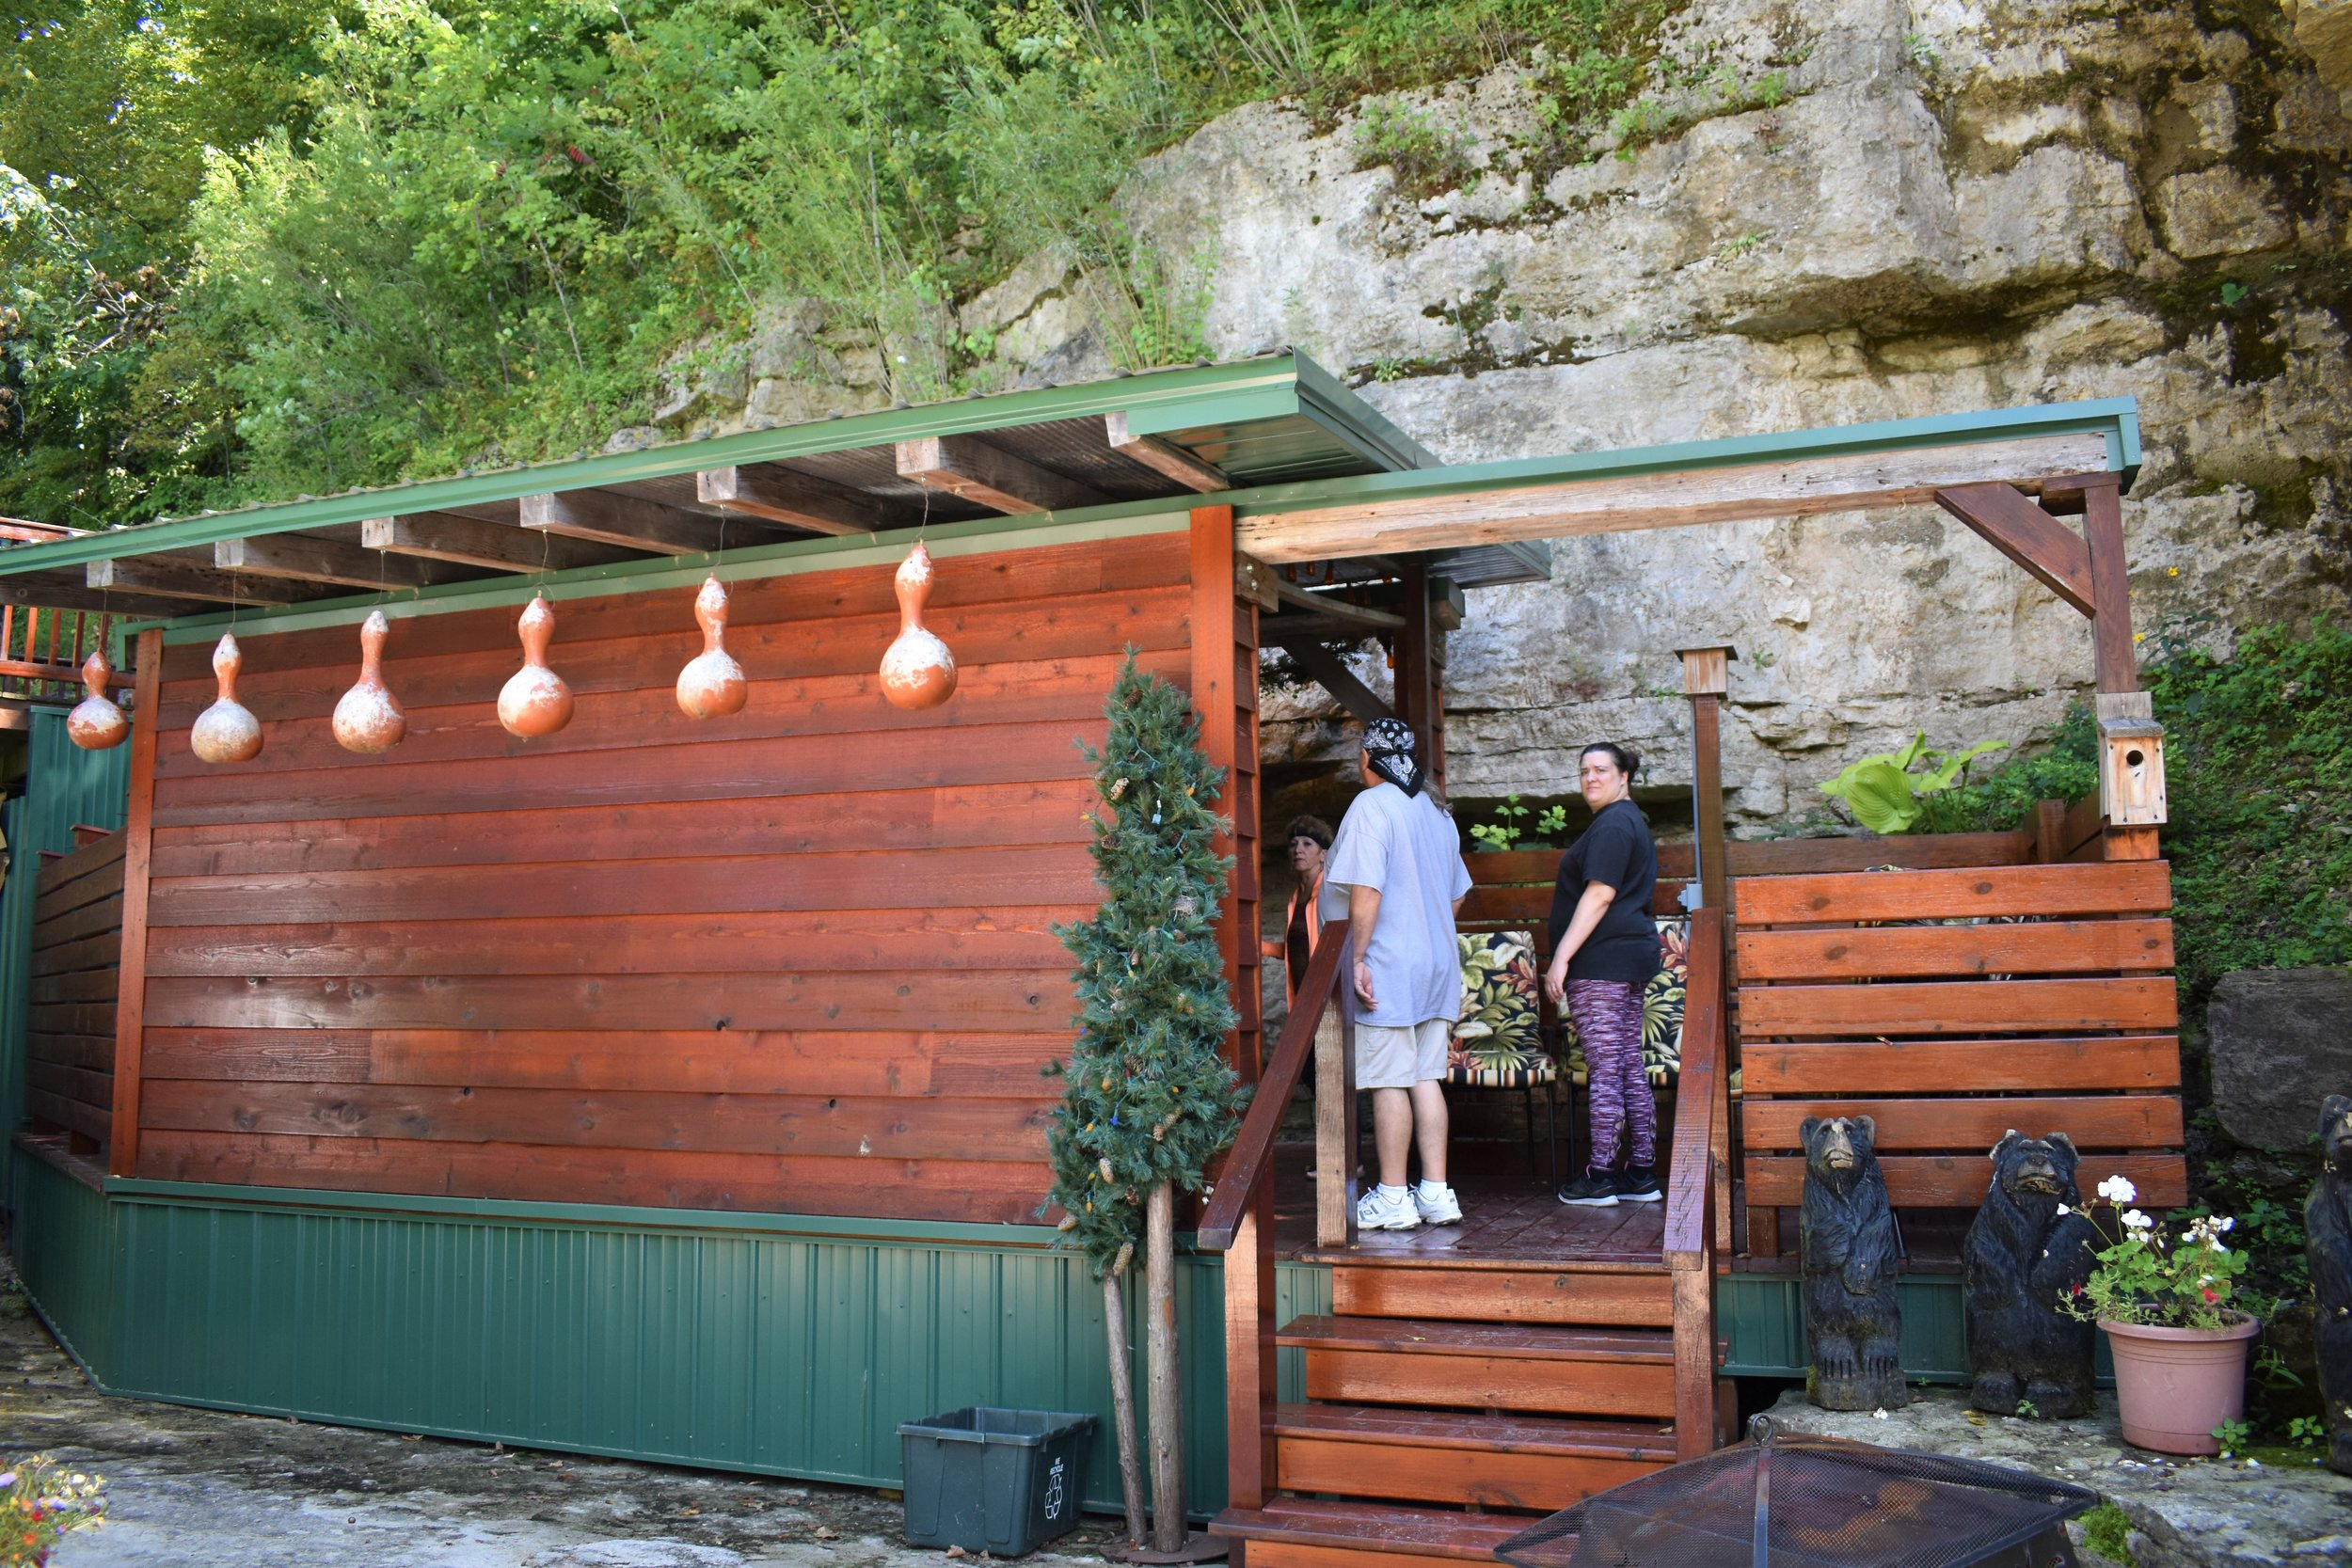 The cliff side hot tub venue